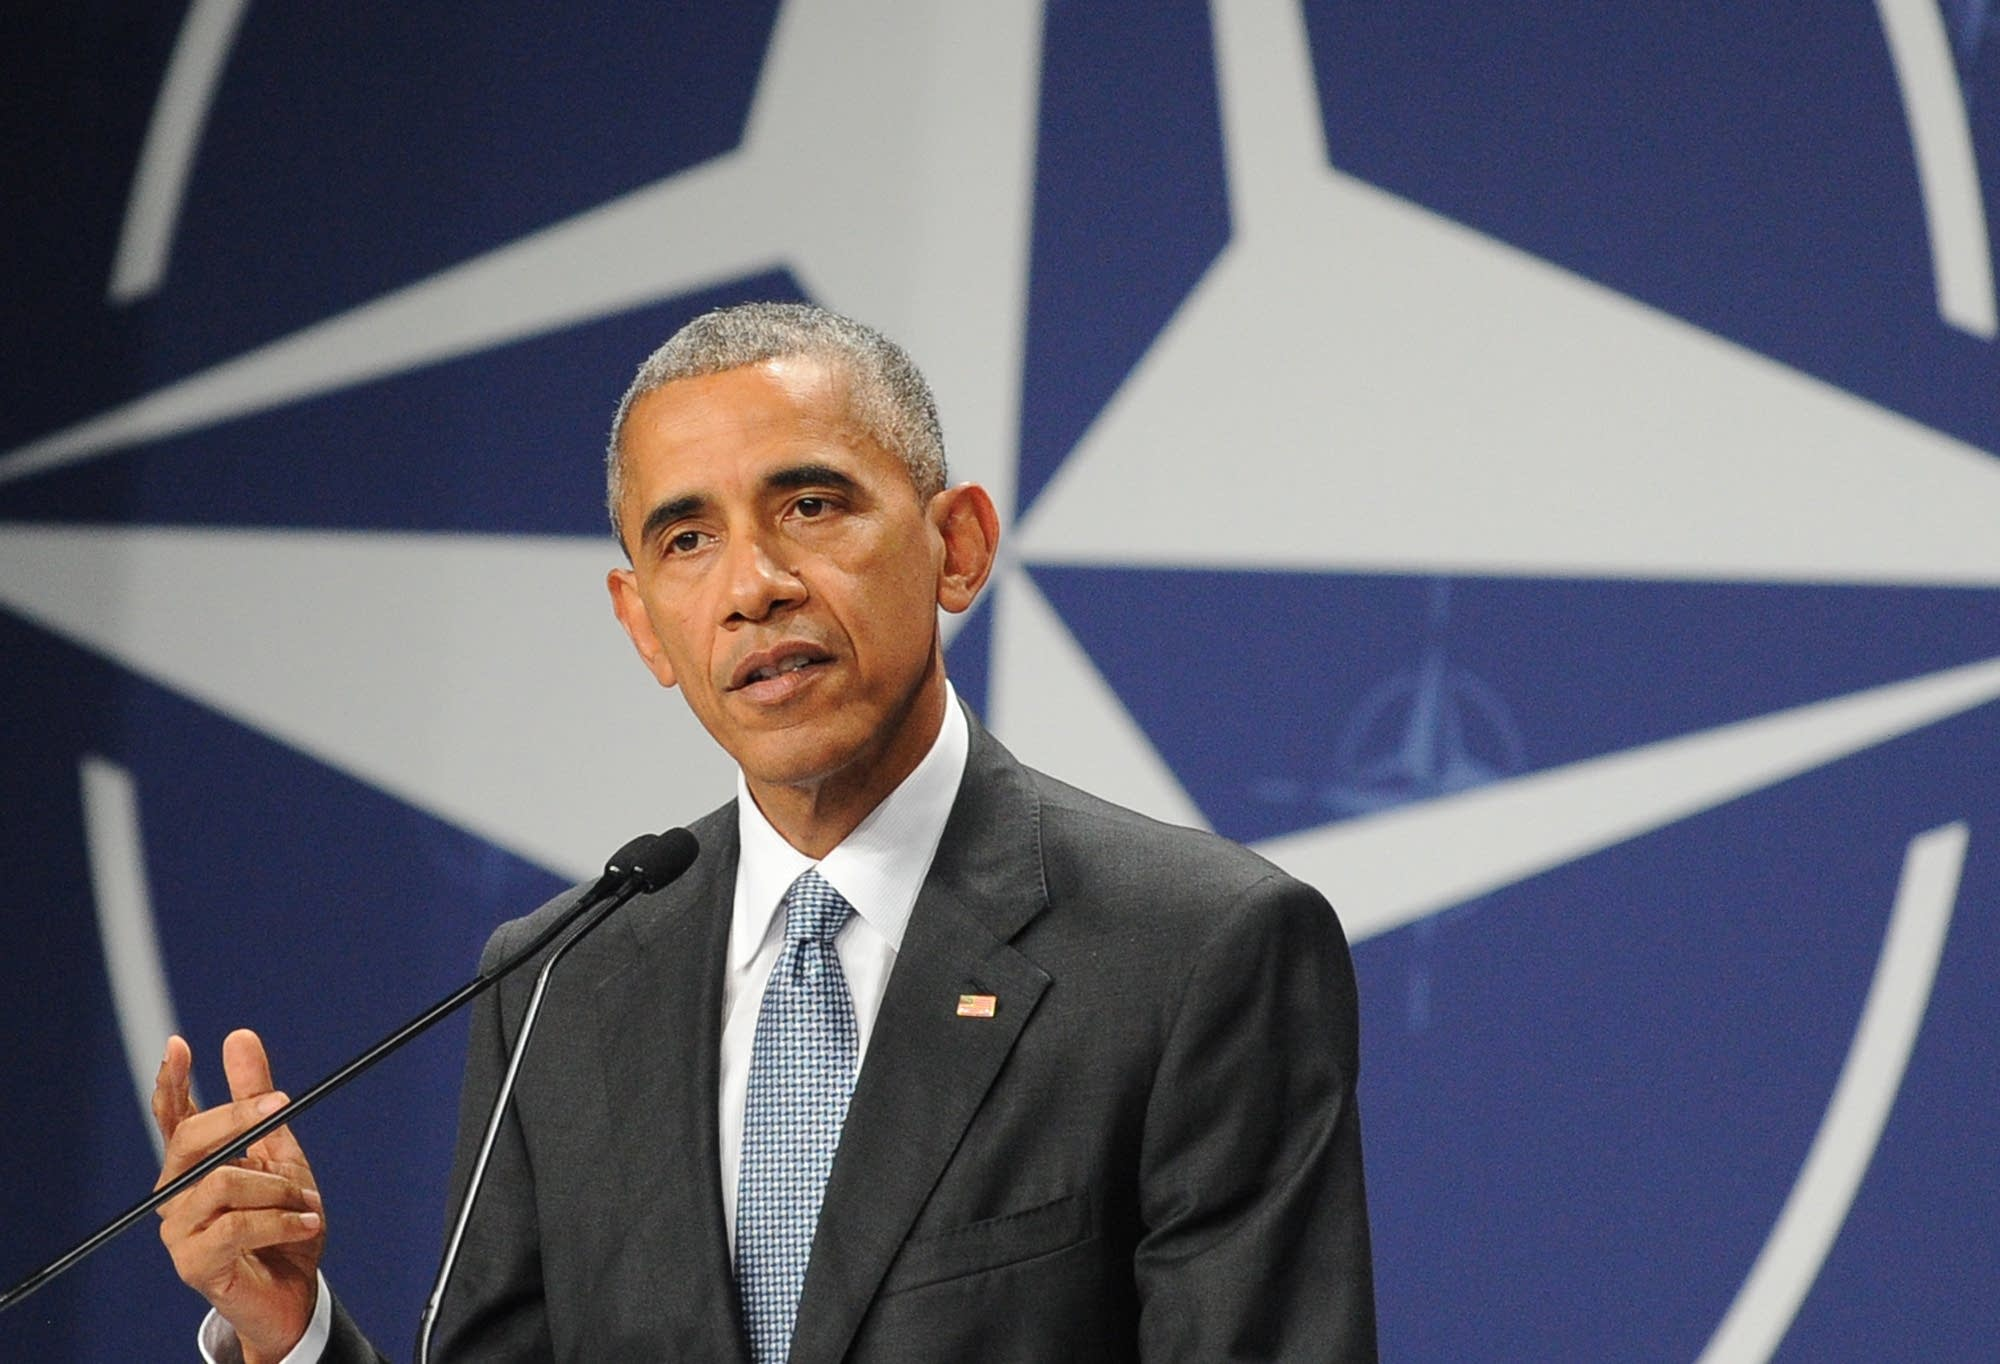 Pres. Obama in Warsaw